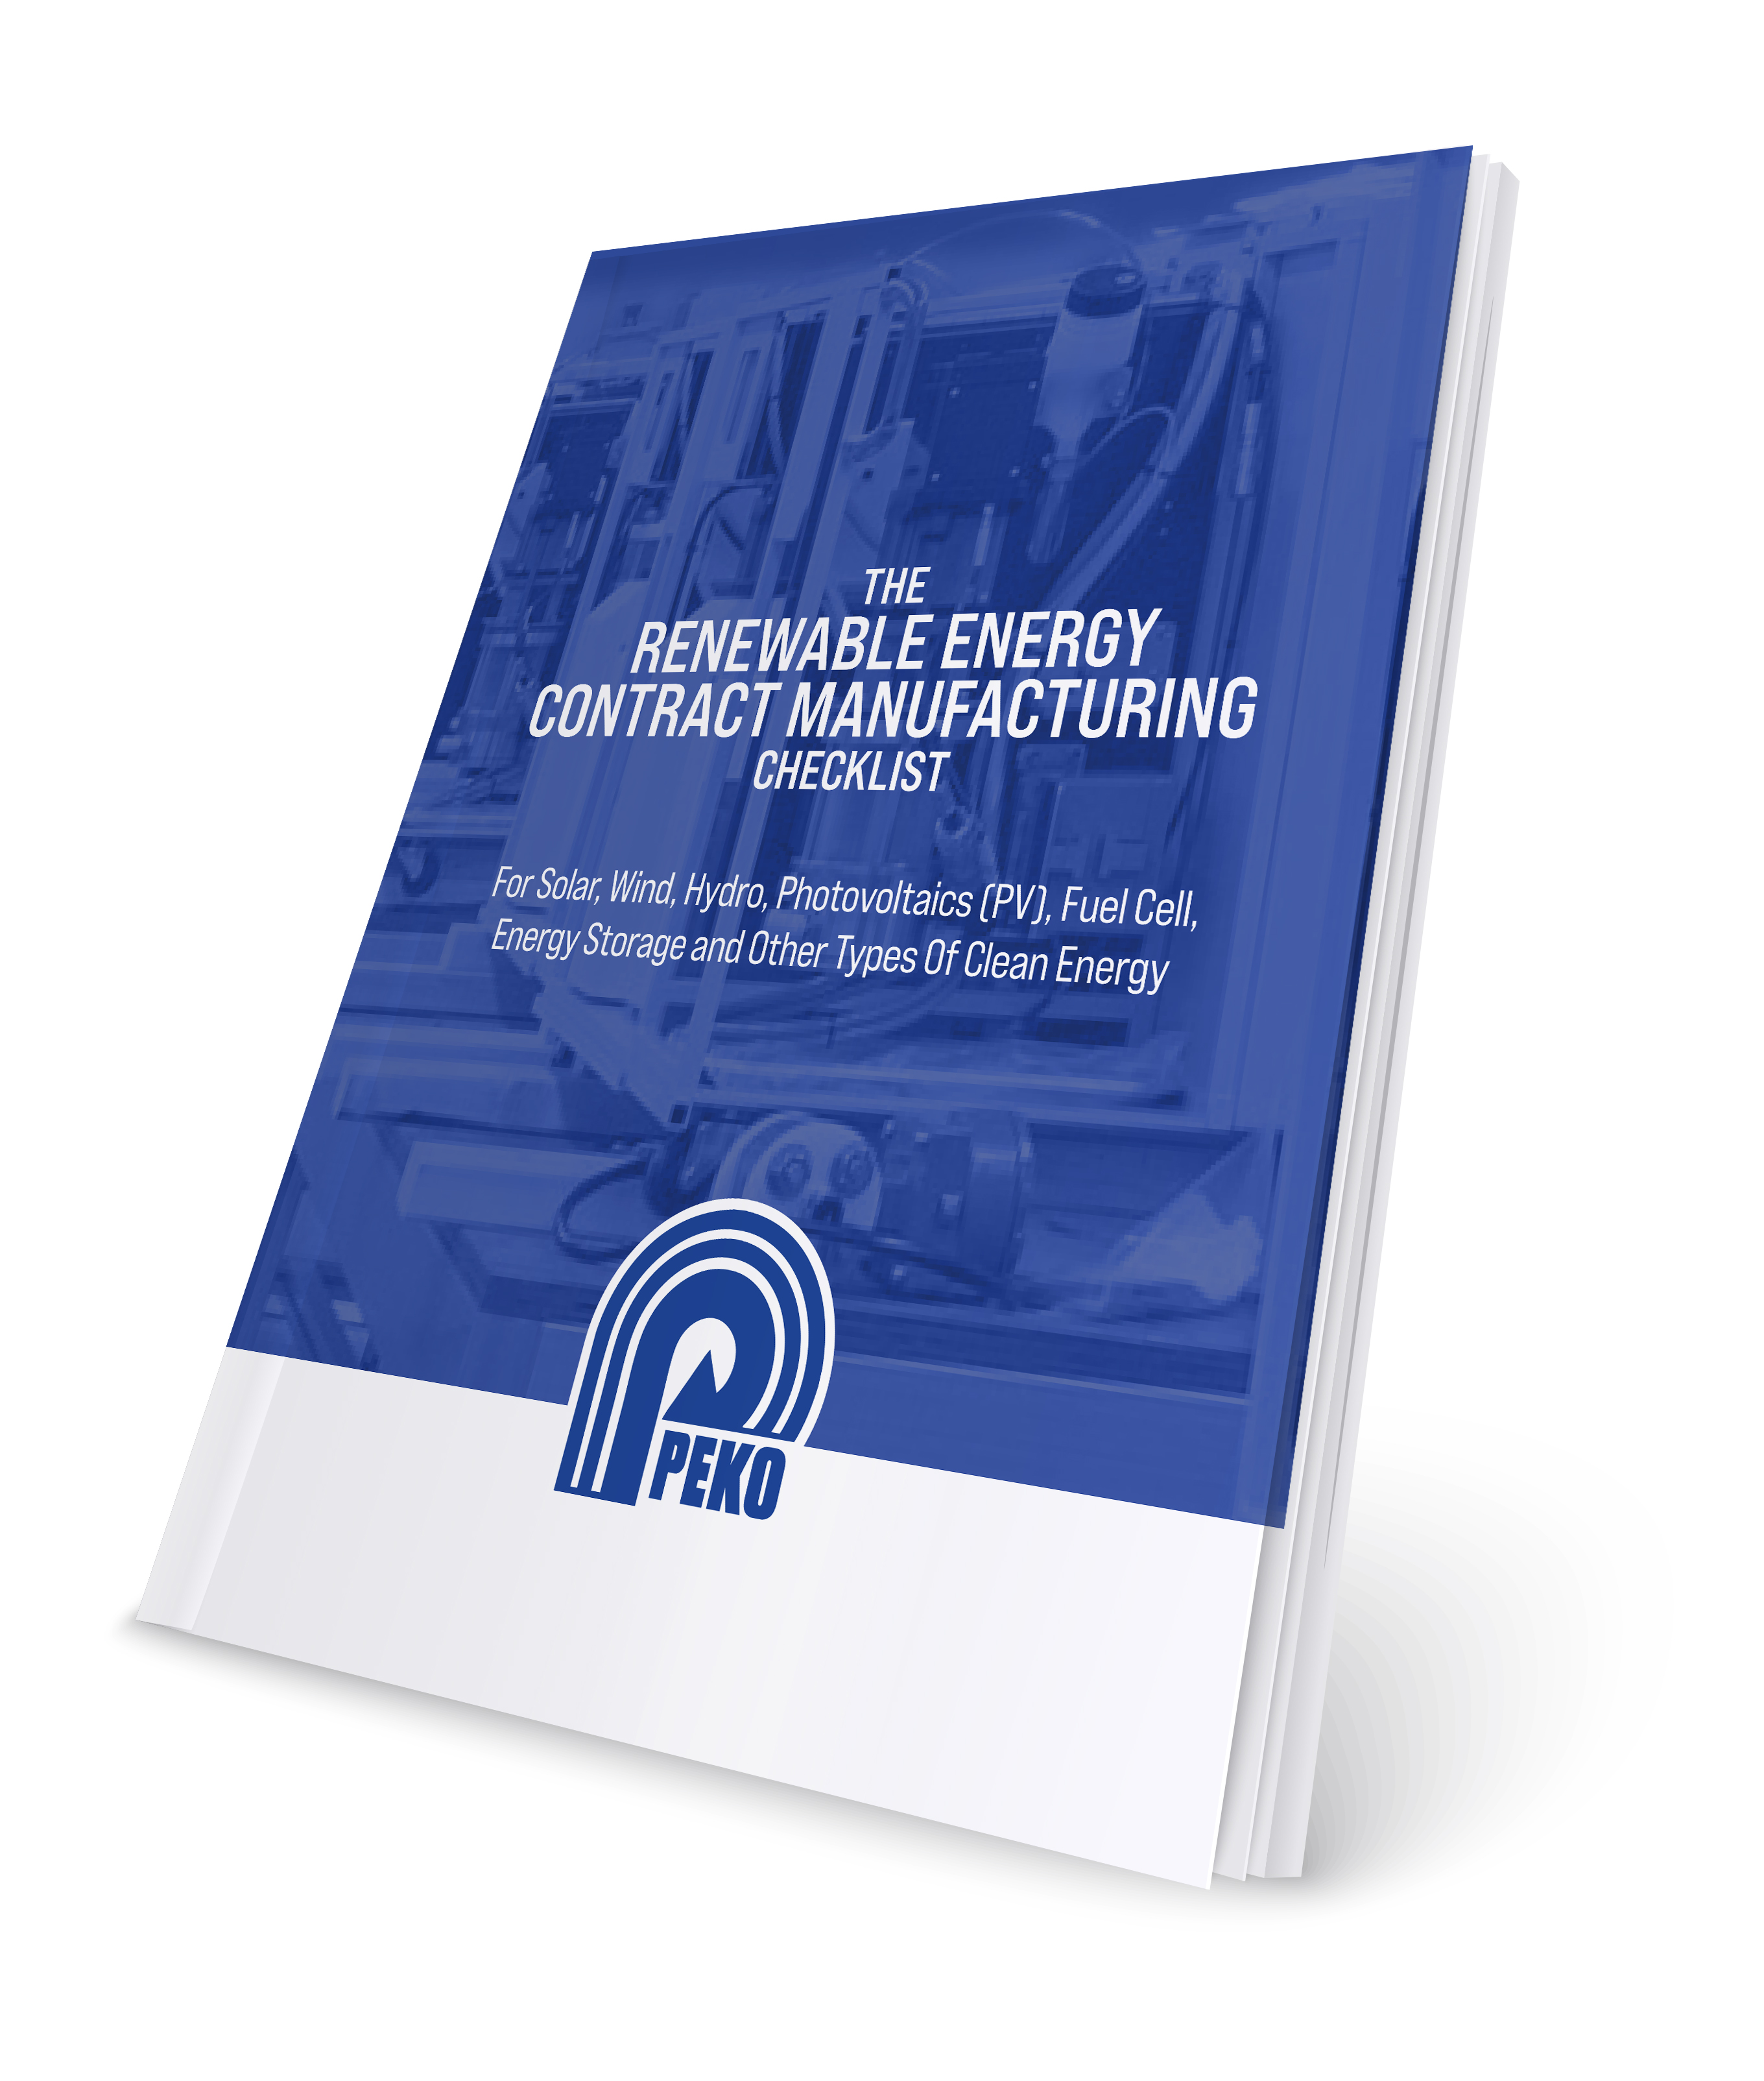 RenewableEnergy Contract manufacturing checklist cover